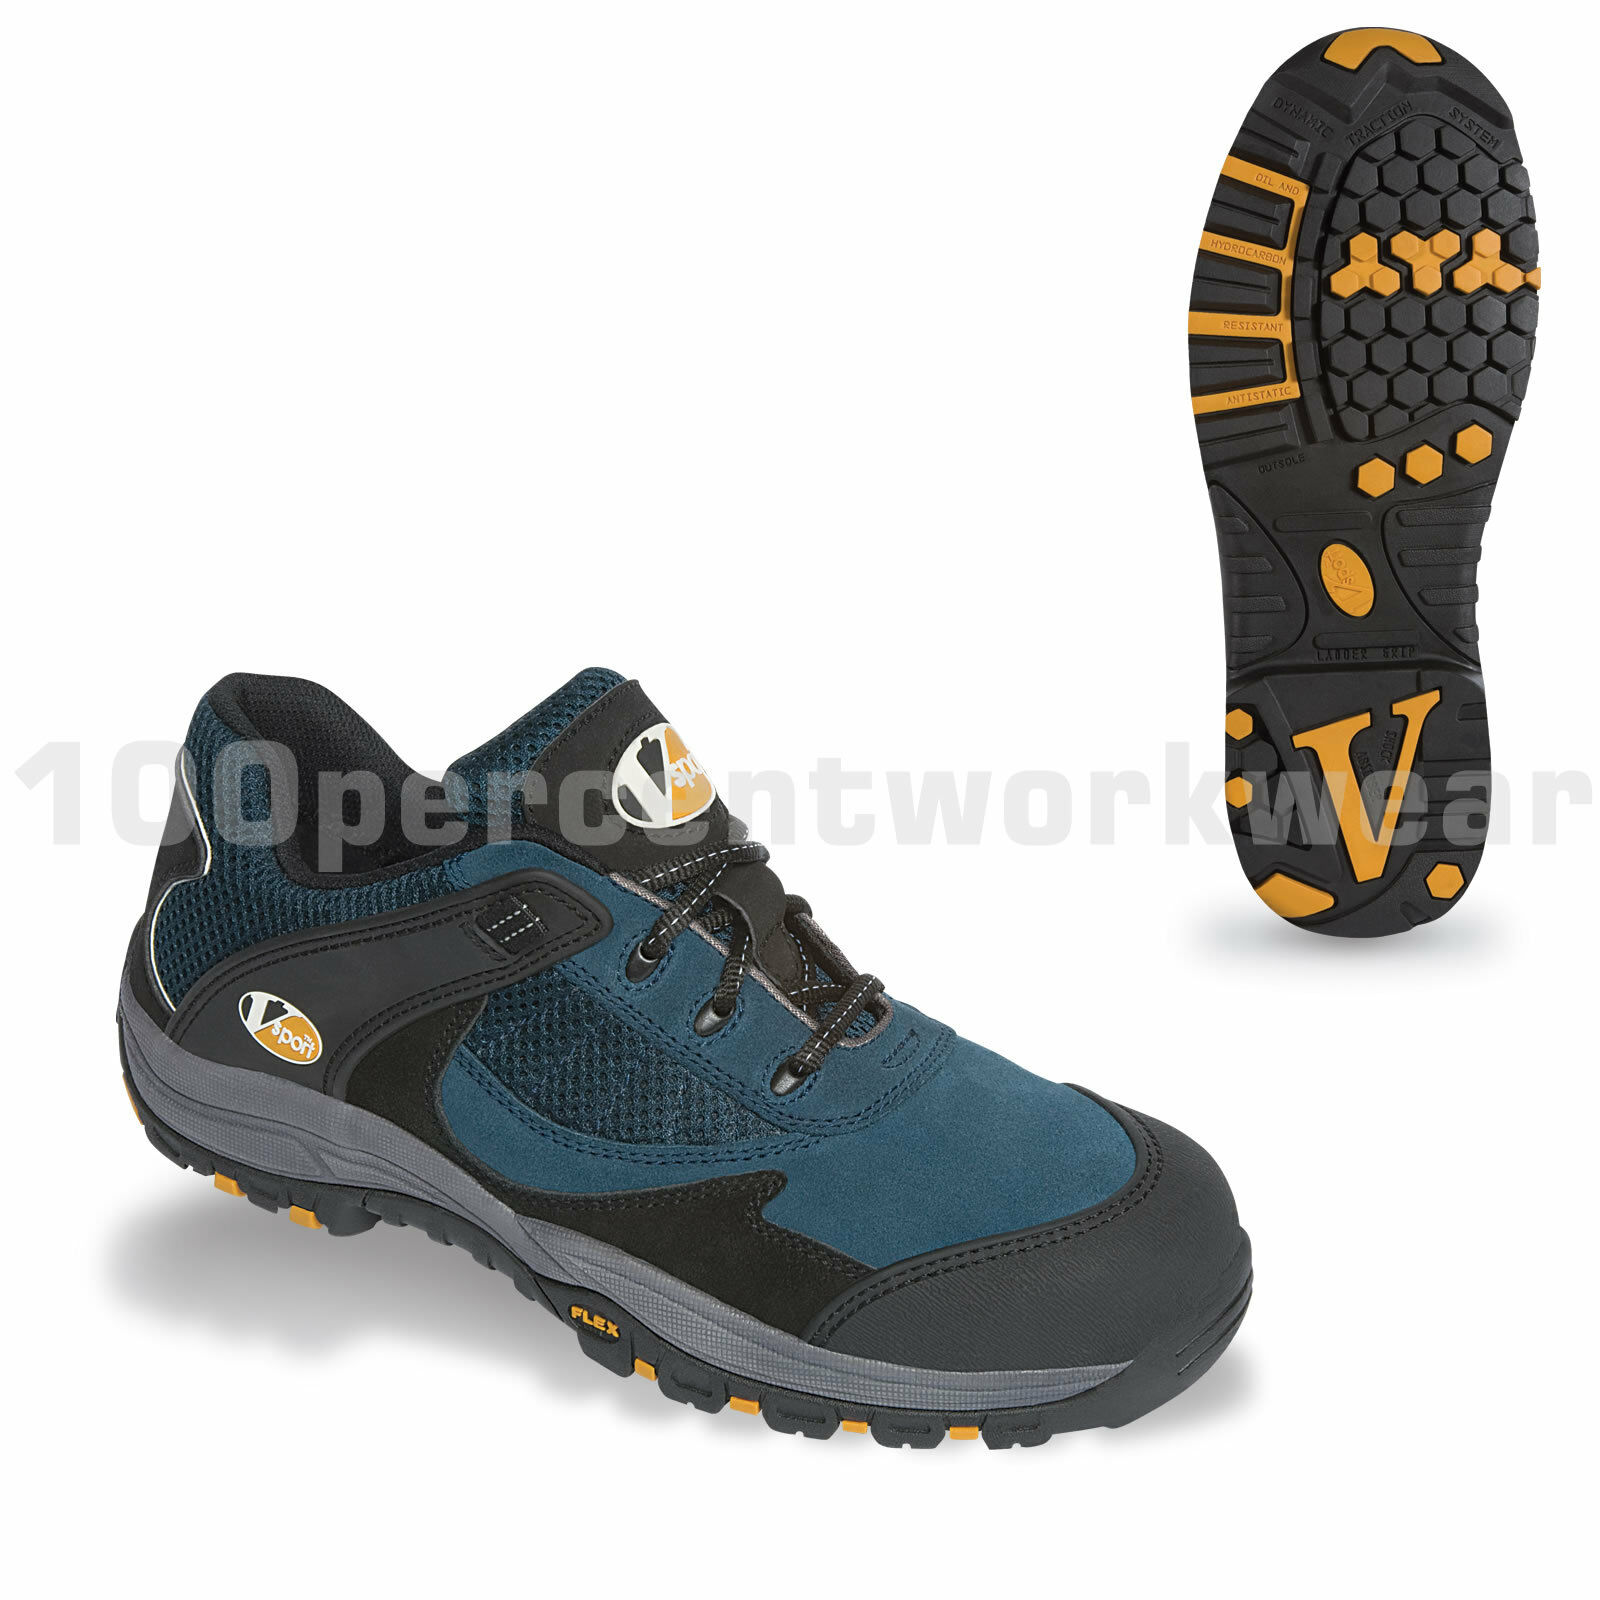 V12 Vtech Safety VS400 PITSTOP Work Trainers Schuhes Blau Free Suede Toe Cap Metal Free Blau 594022